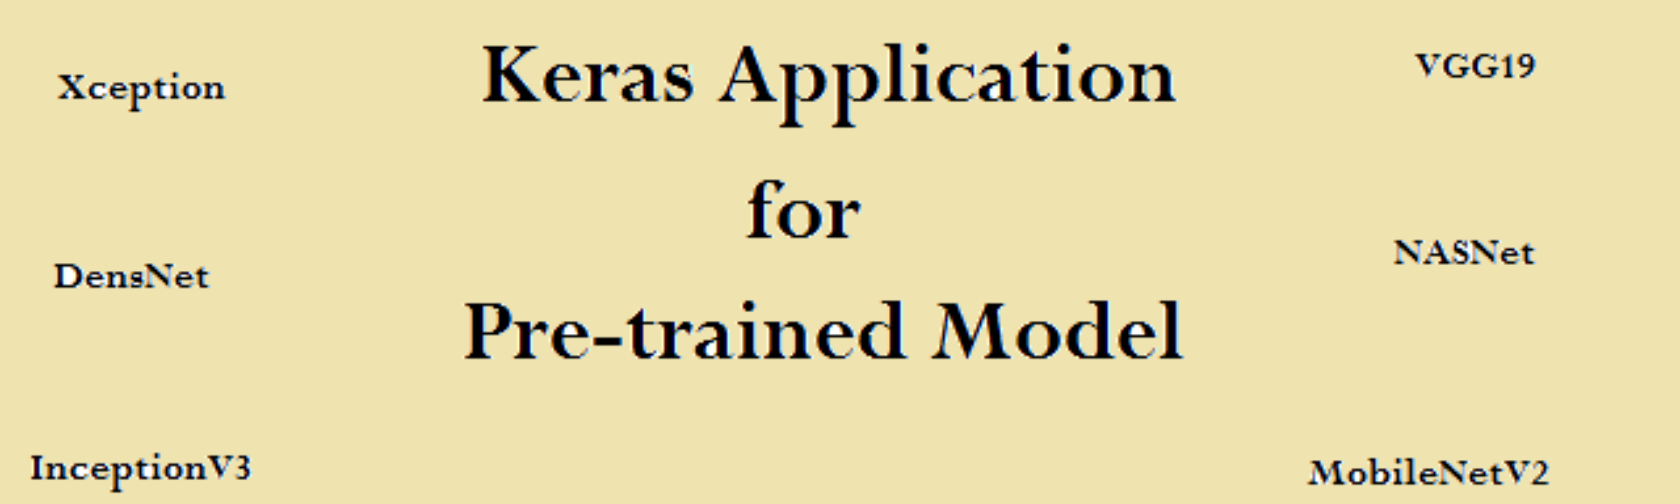 Keras Application for Pre-trained Model | engMRK